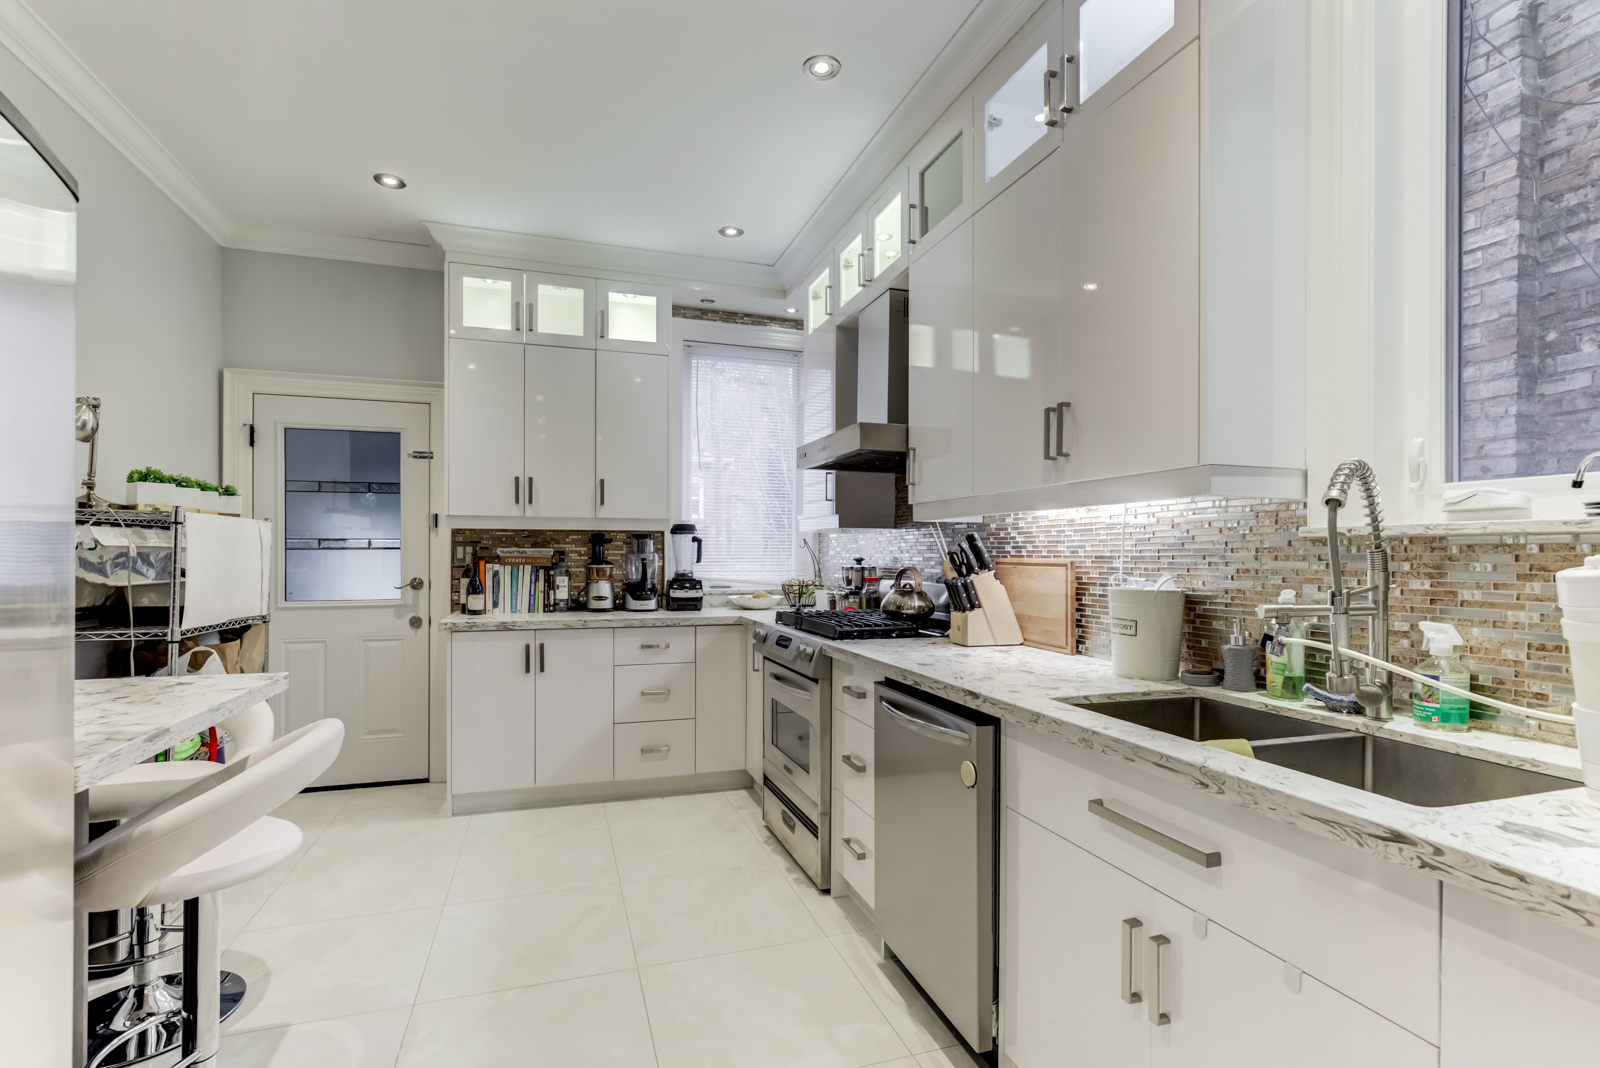 120 McGill St, renovated kitchen with silver appliances, pot-lights and gleaming white cabinets.